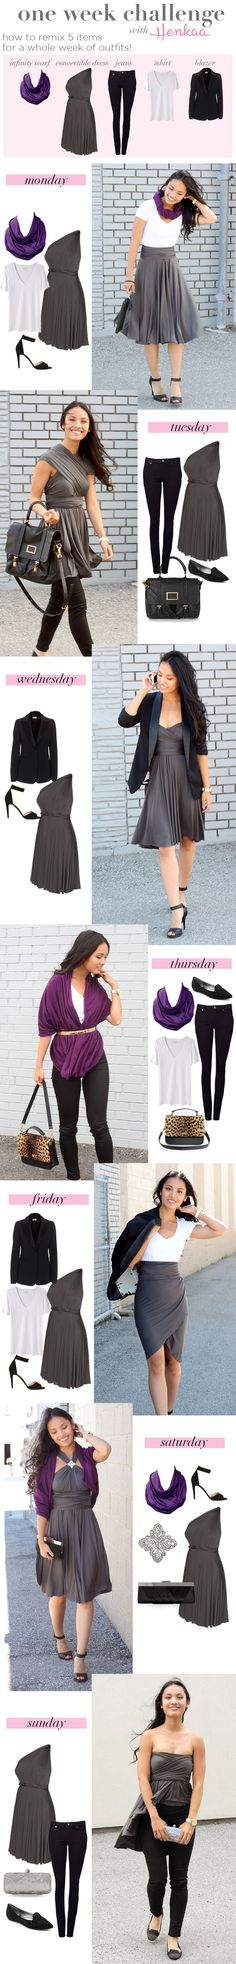 An entire WEEK of outfits can be remixed from only 5 clothing items! Just pick a mix of basics and convertible clothing. Then accessorize! Great outfits for work to weekend and day to night!